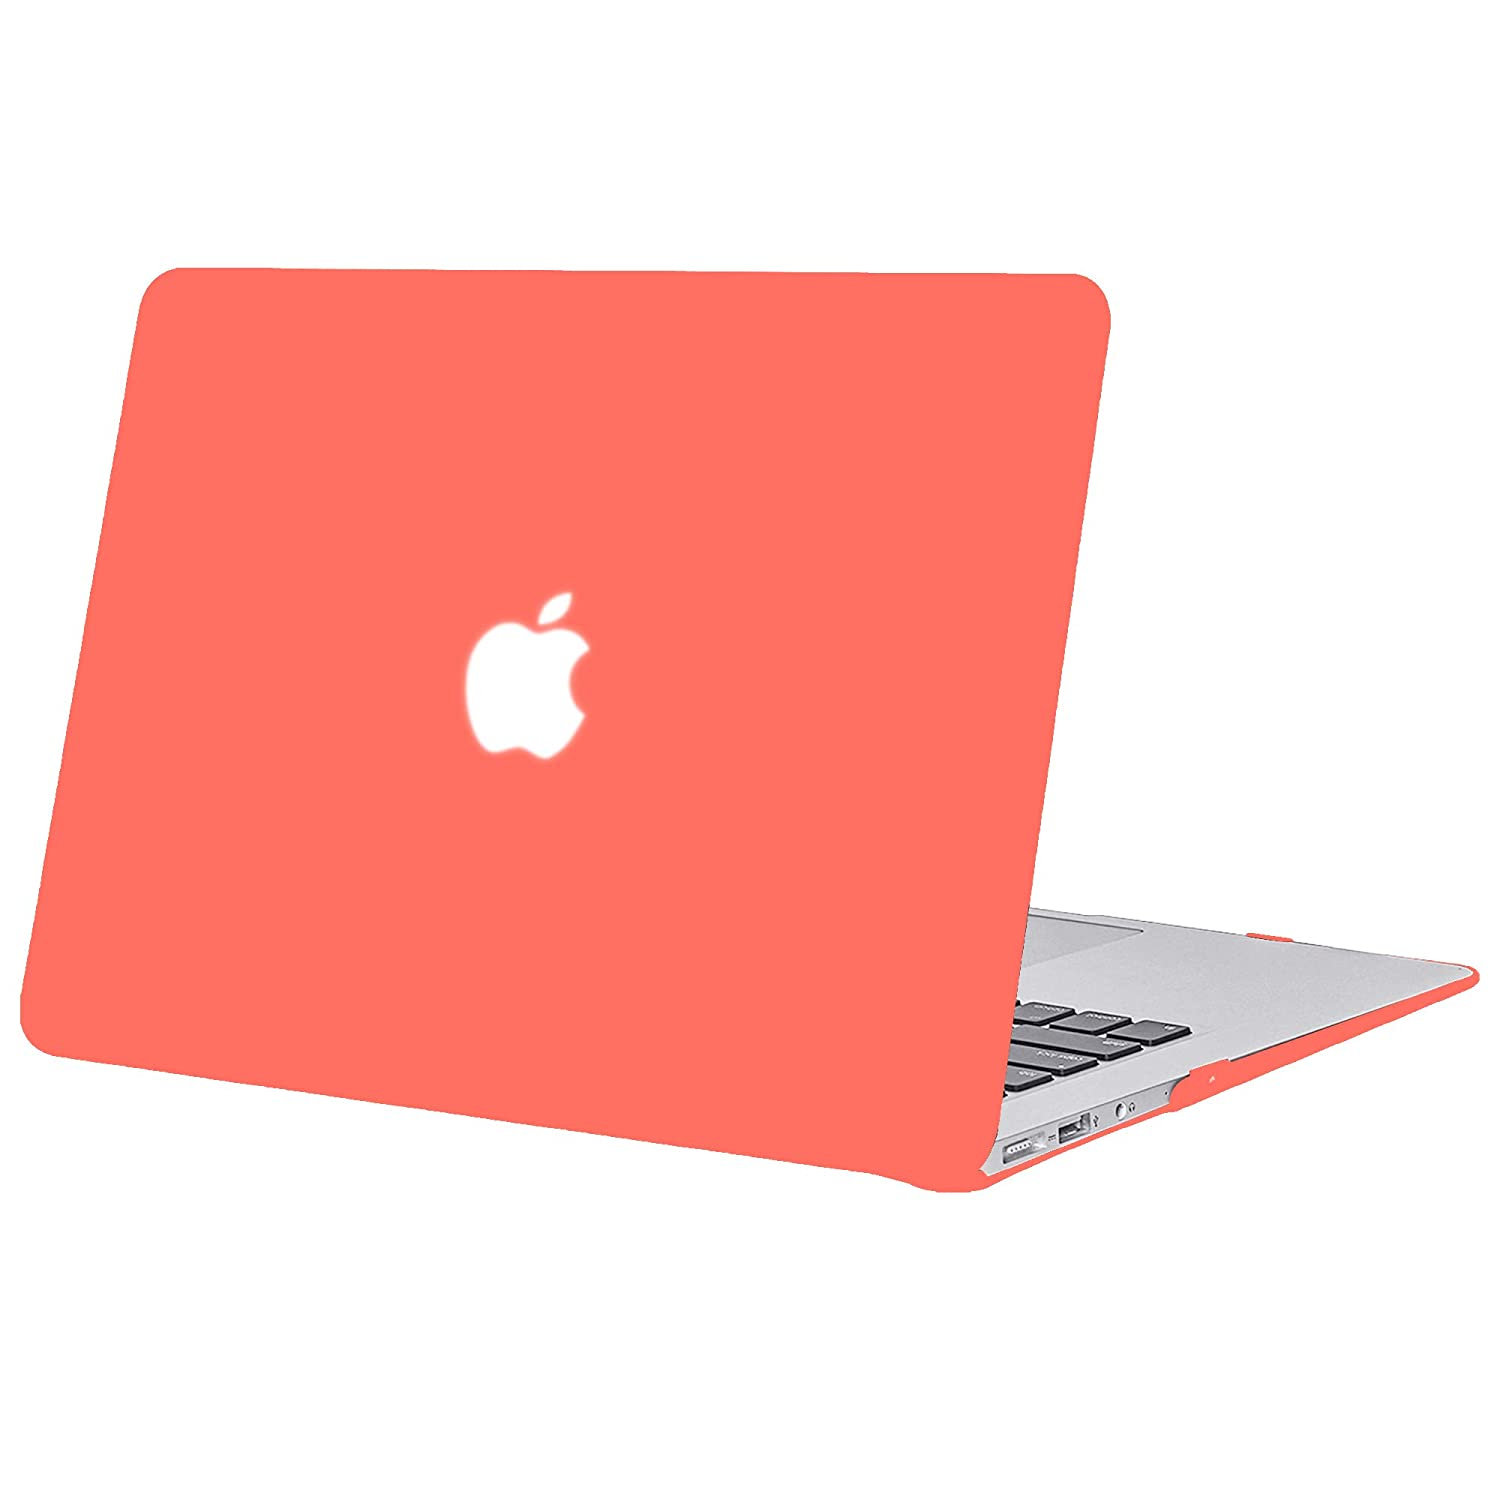 A1369 Ultra Mince S/érie Orange Corail Plastique Mate Rigide /Étui avec Couverture de Clavier en Silicone pour 2010-2017 MacBook Air 13.3 Mod/èle A1466 TECOOL Coque MacBook Air 13 Pouces,